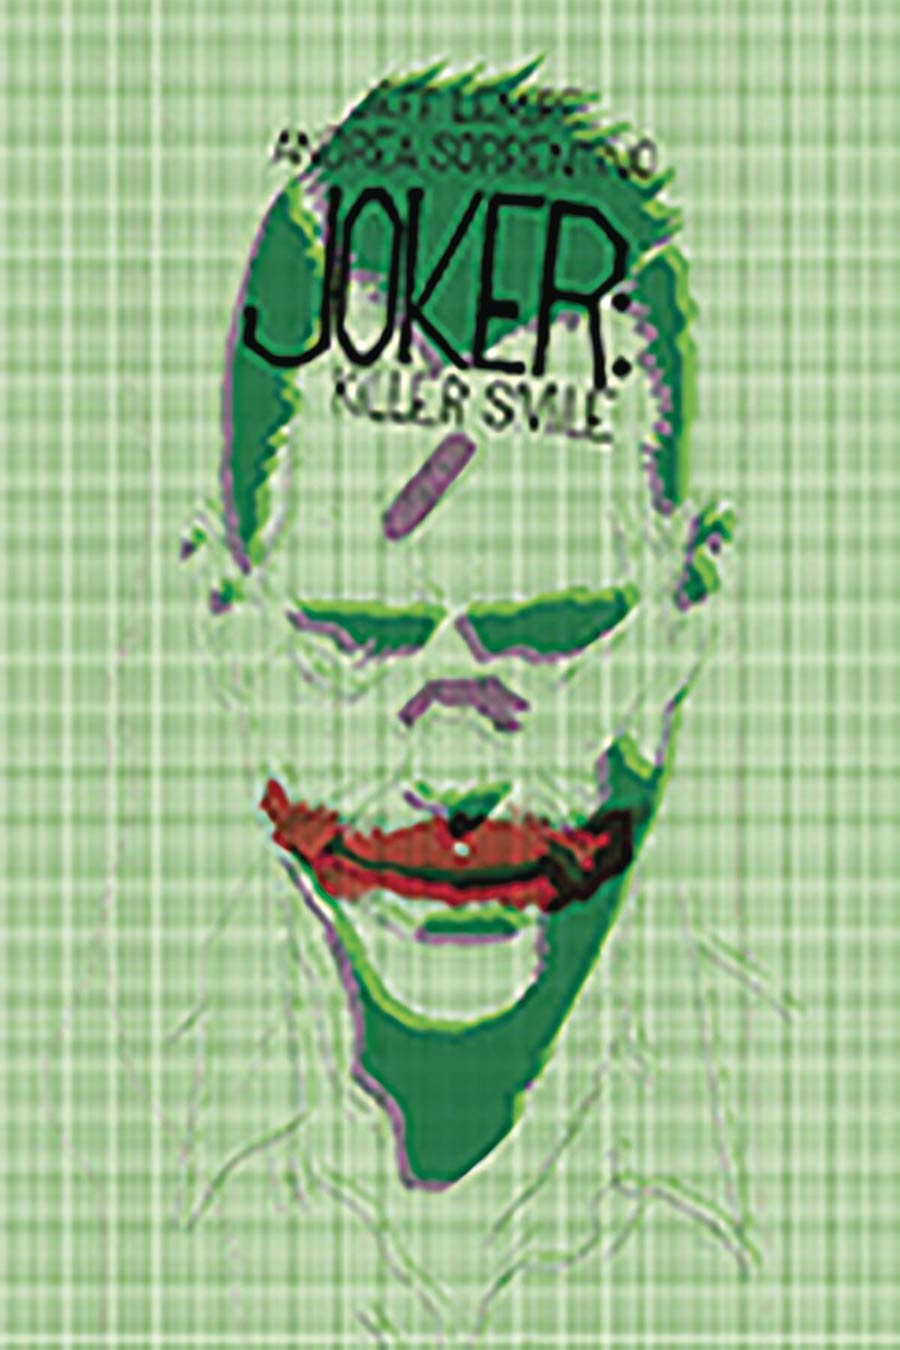 Joker Killer Smile #1 Cover C DF CGC Graded